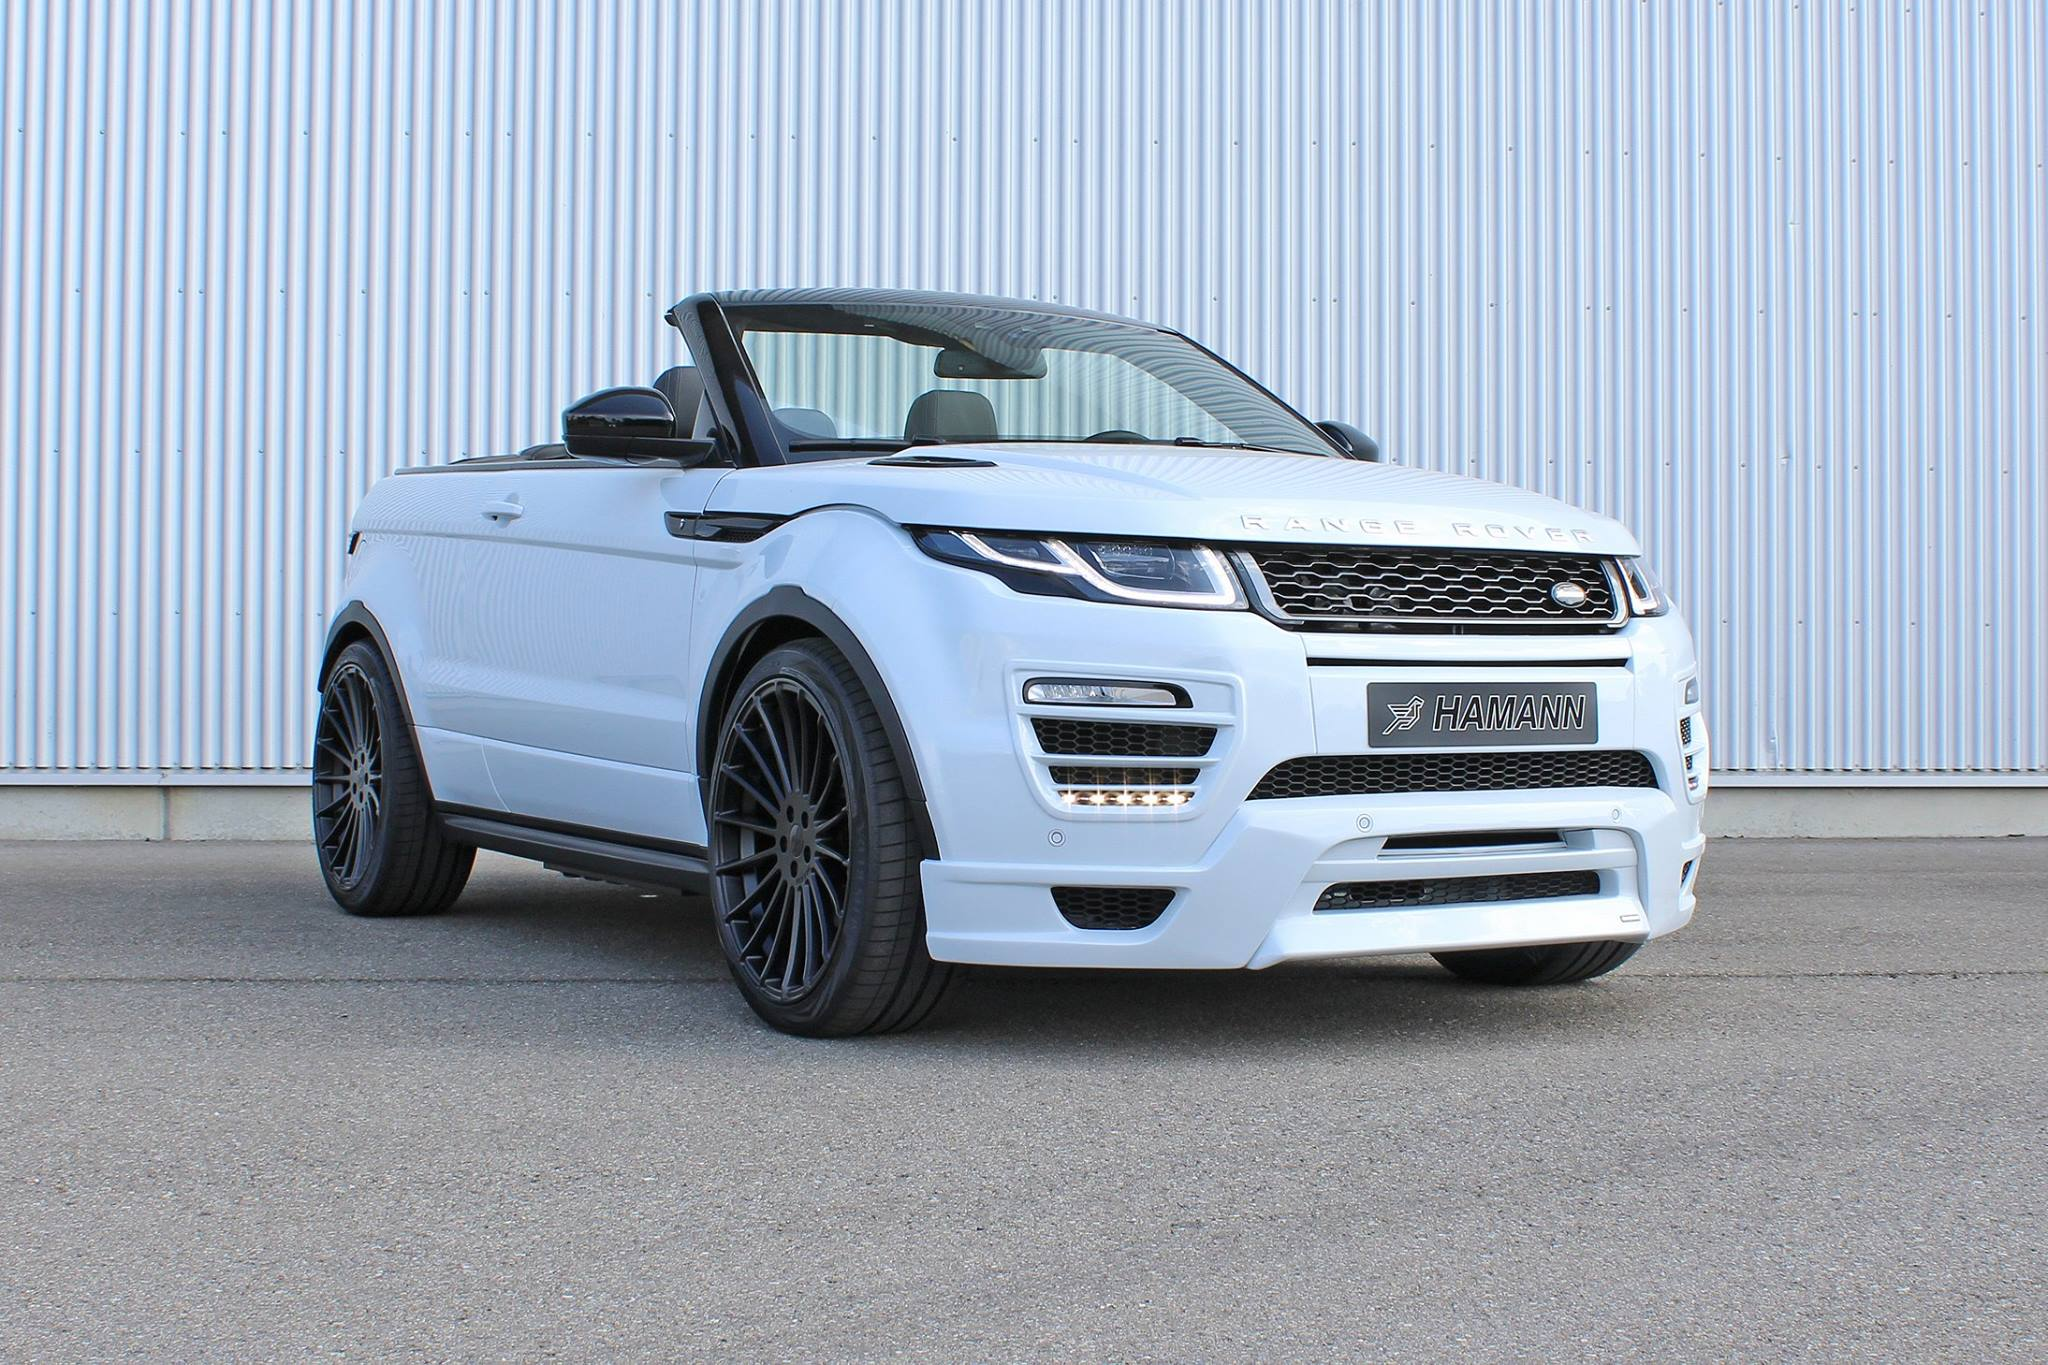 hamann range rover evoque cabrio makes video debut. Black Bedroom Furniture Sets. Home Design Ideas